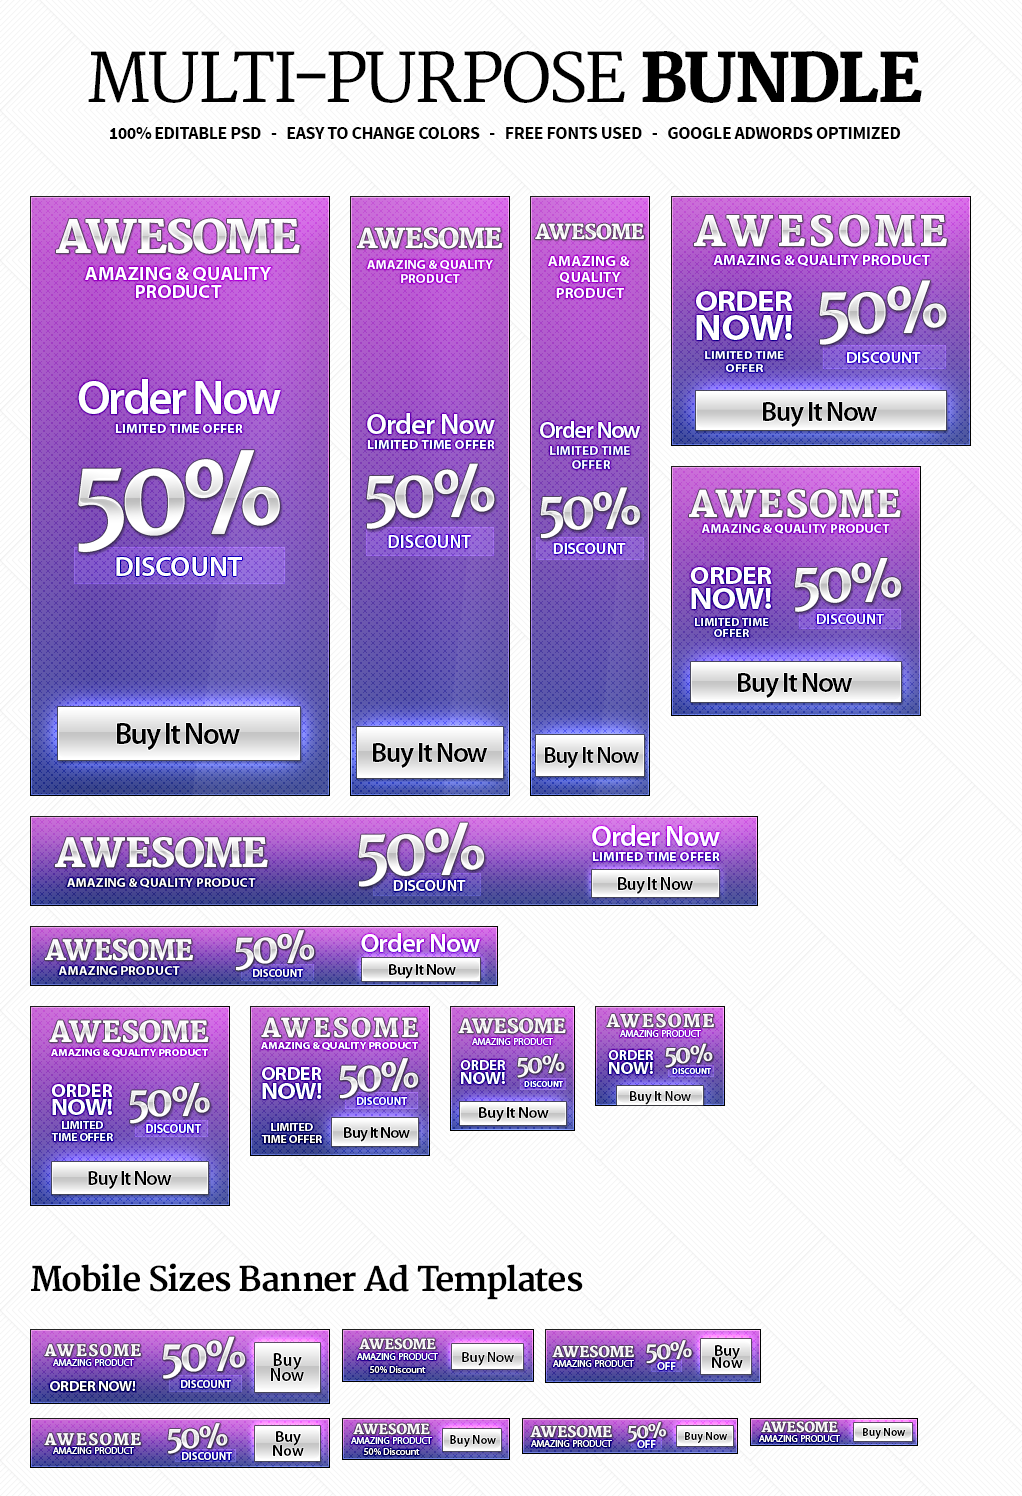 awesome and banner ad templates pack banner sizes awesome and banner ad templates pack 18 banner sizes included for web and mobile